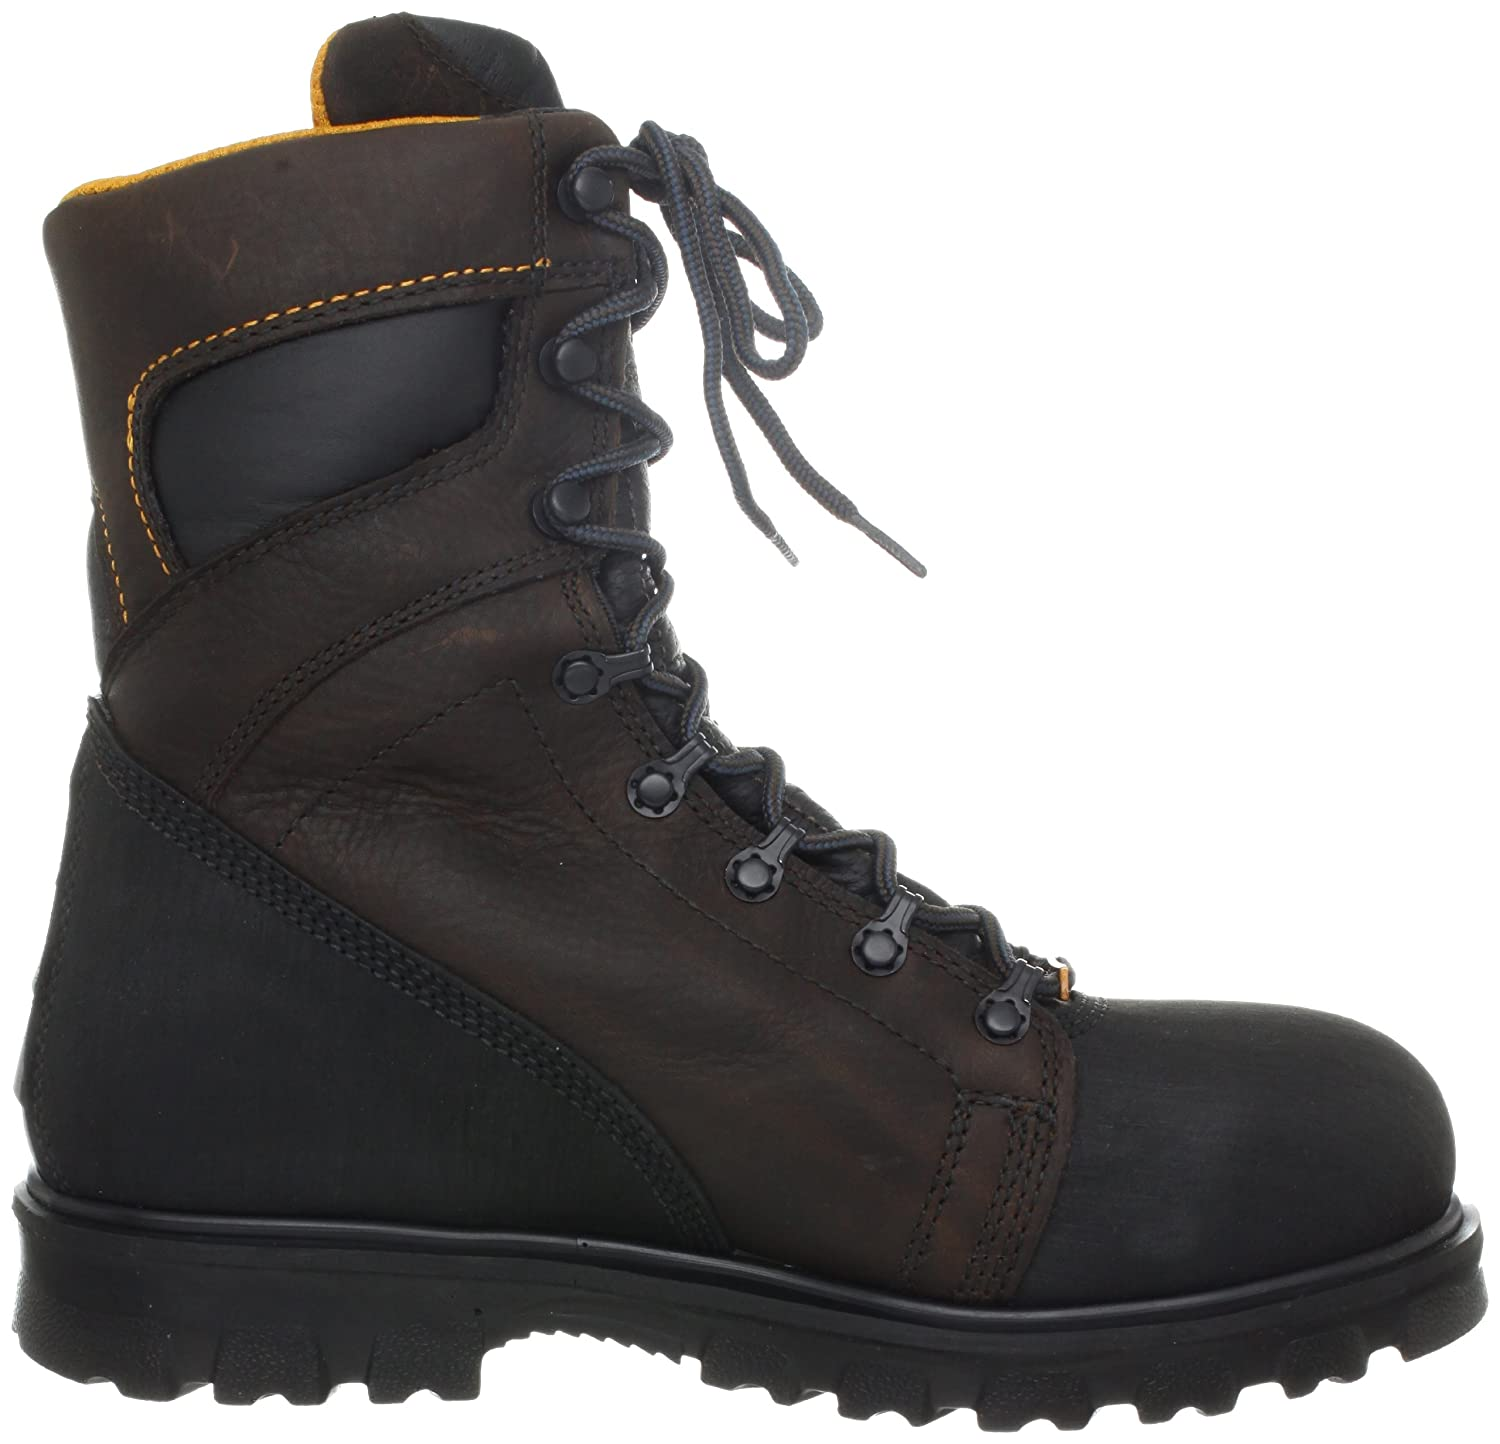 Timberland Bottes Pro Taille 12 bXwegPByl4